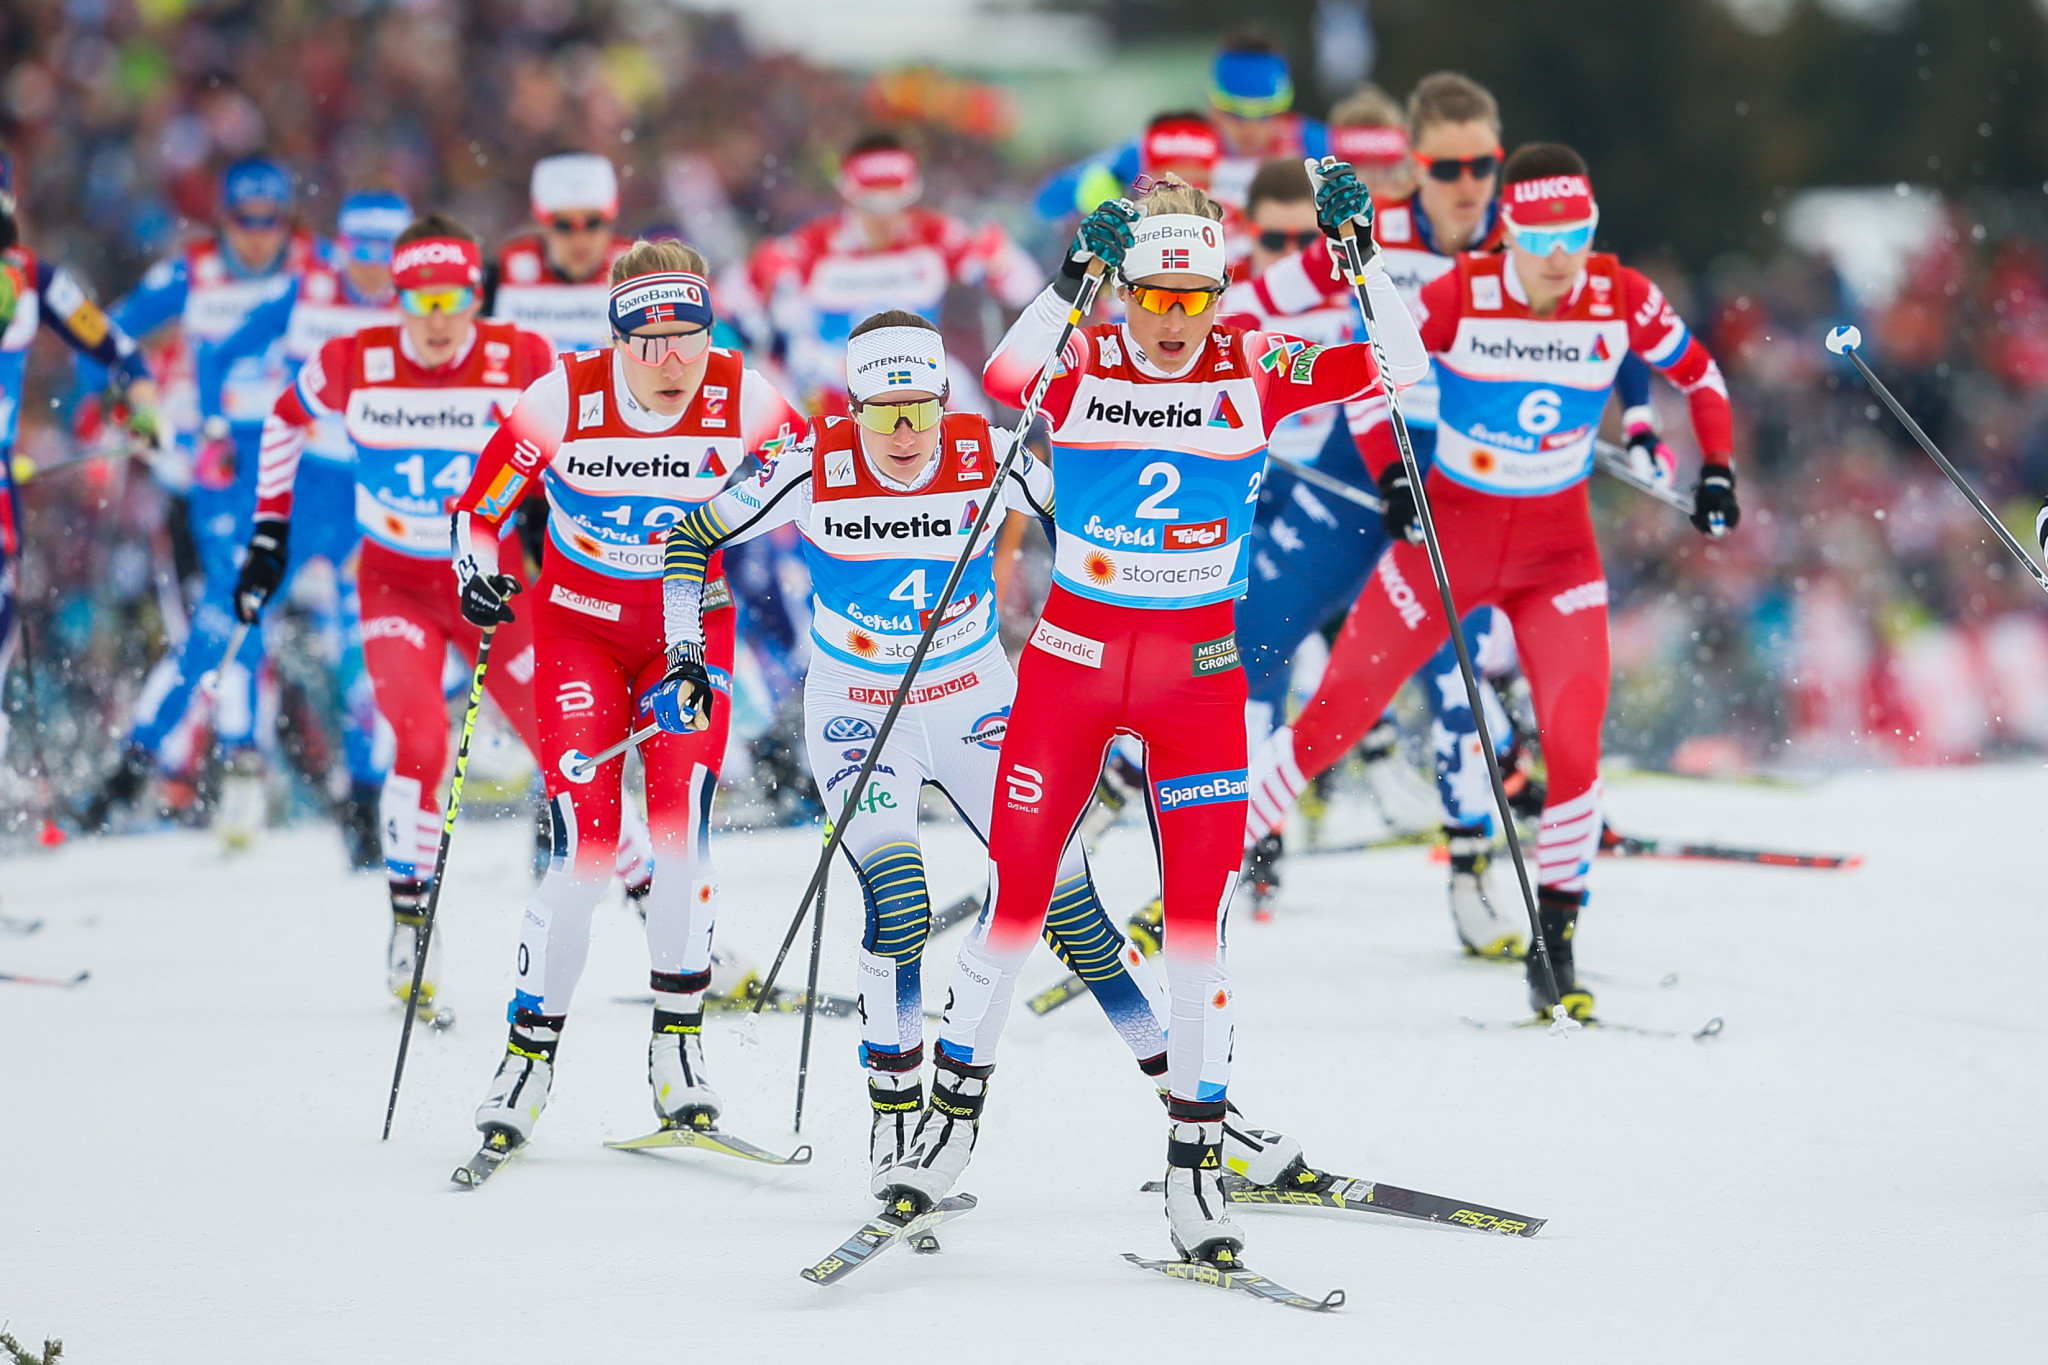 The Norwegian sealed her hat-trick of gold medals with a commanding win in the long distance race ©Getty Images